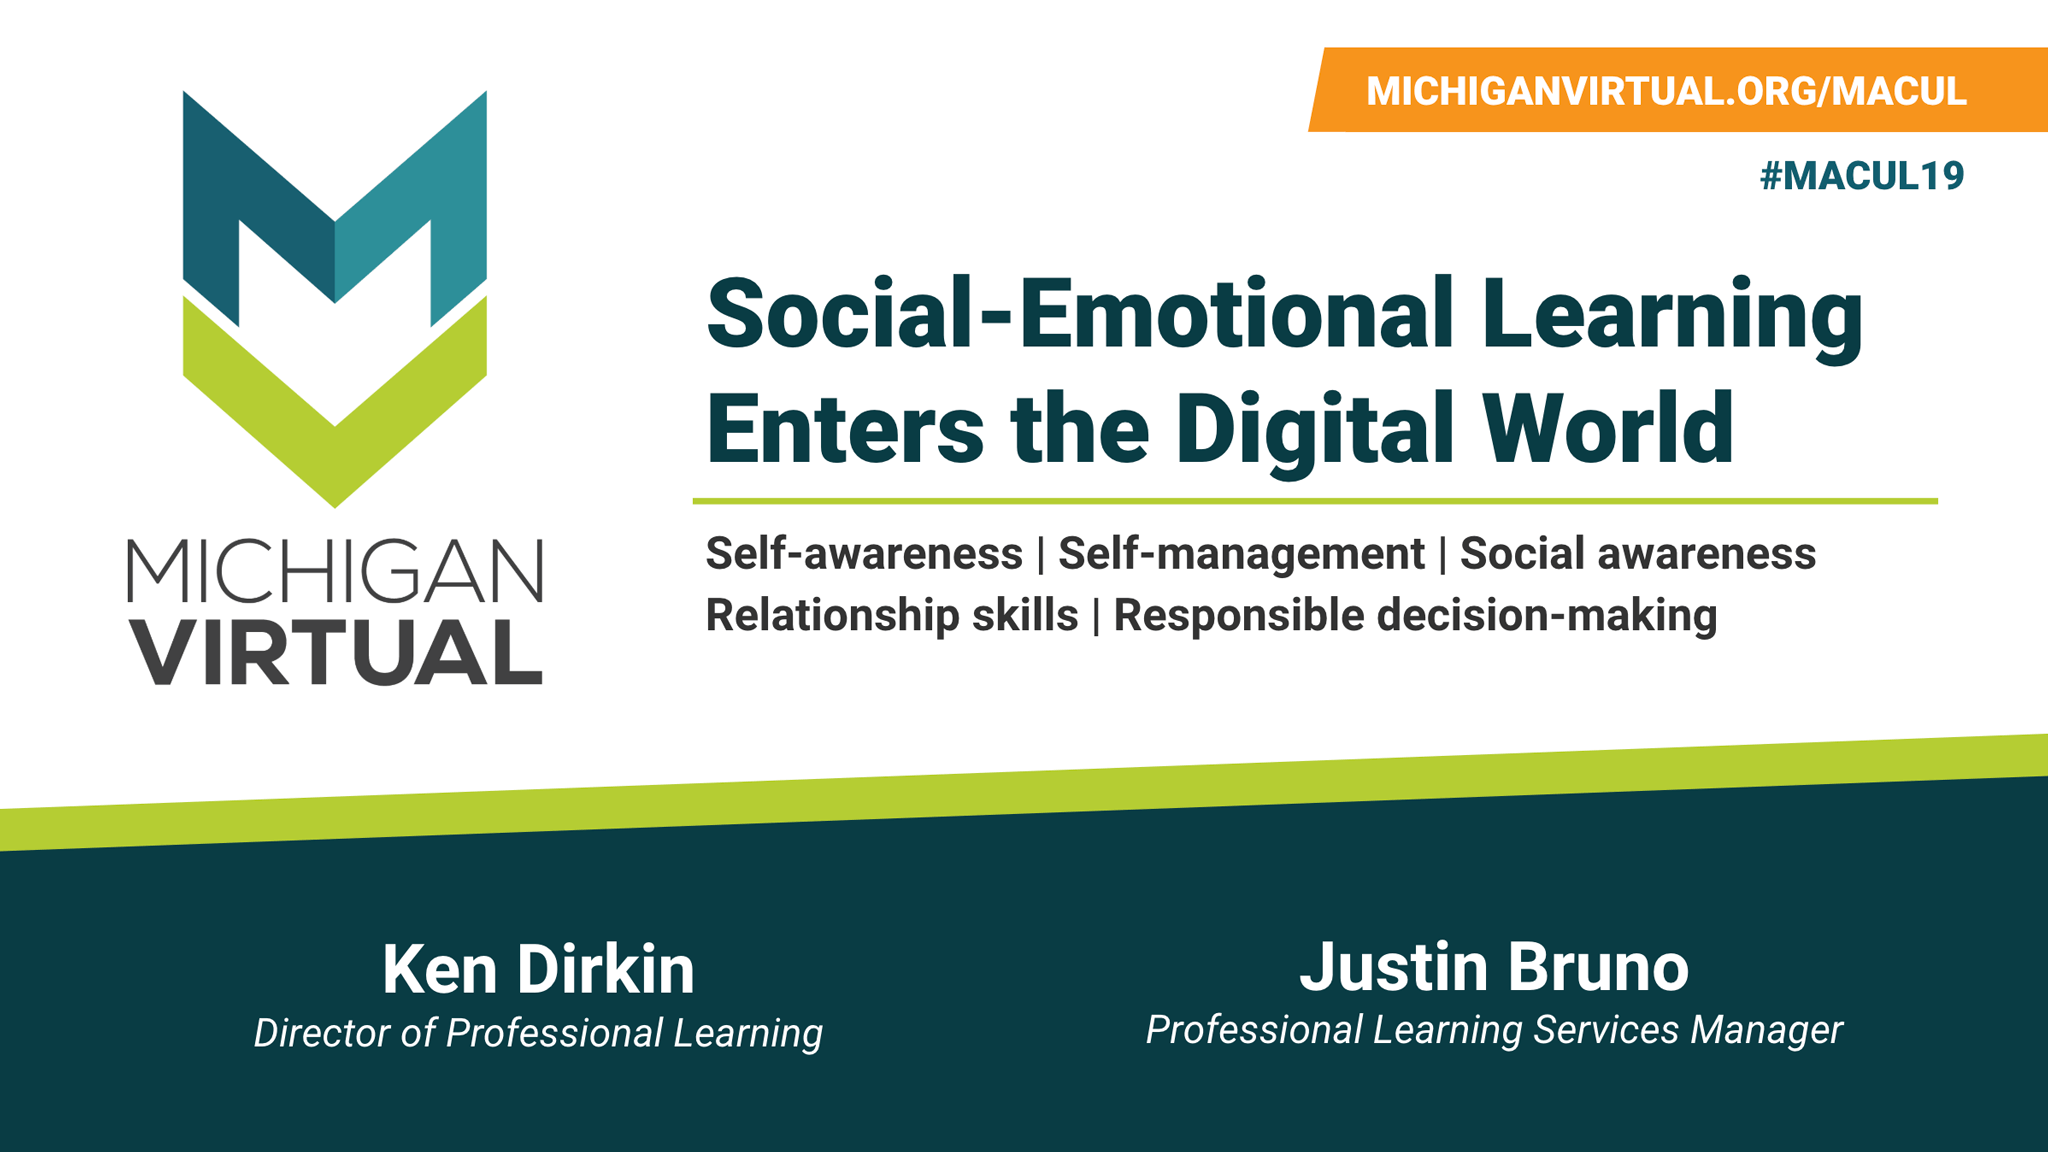 Social-Emotional Learning Enters the Digital World Presentation Cover